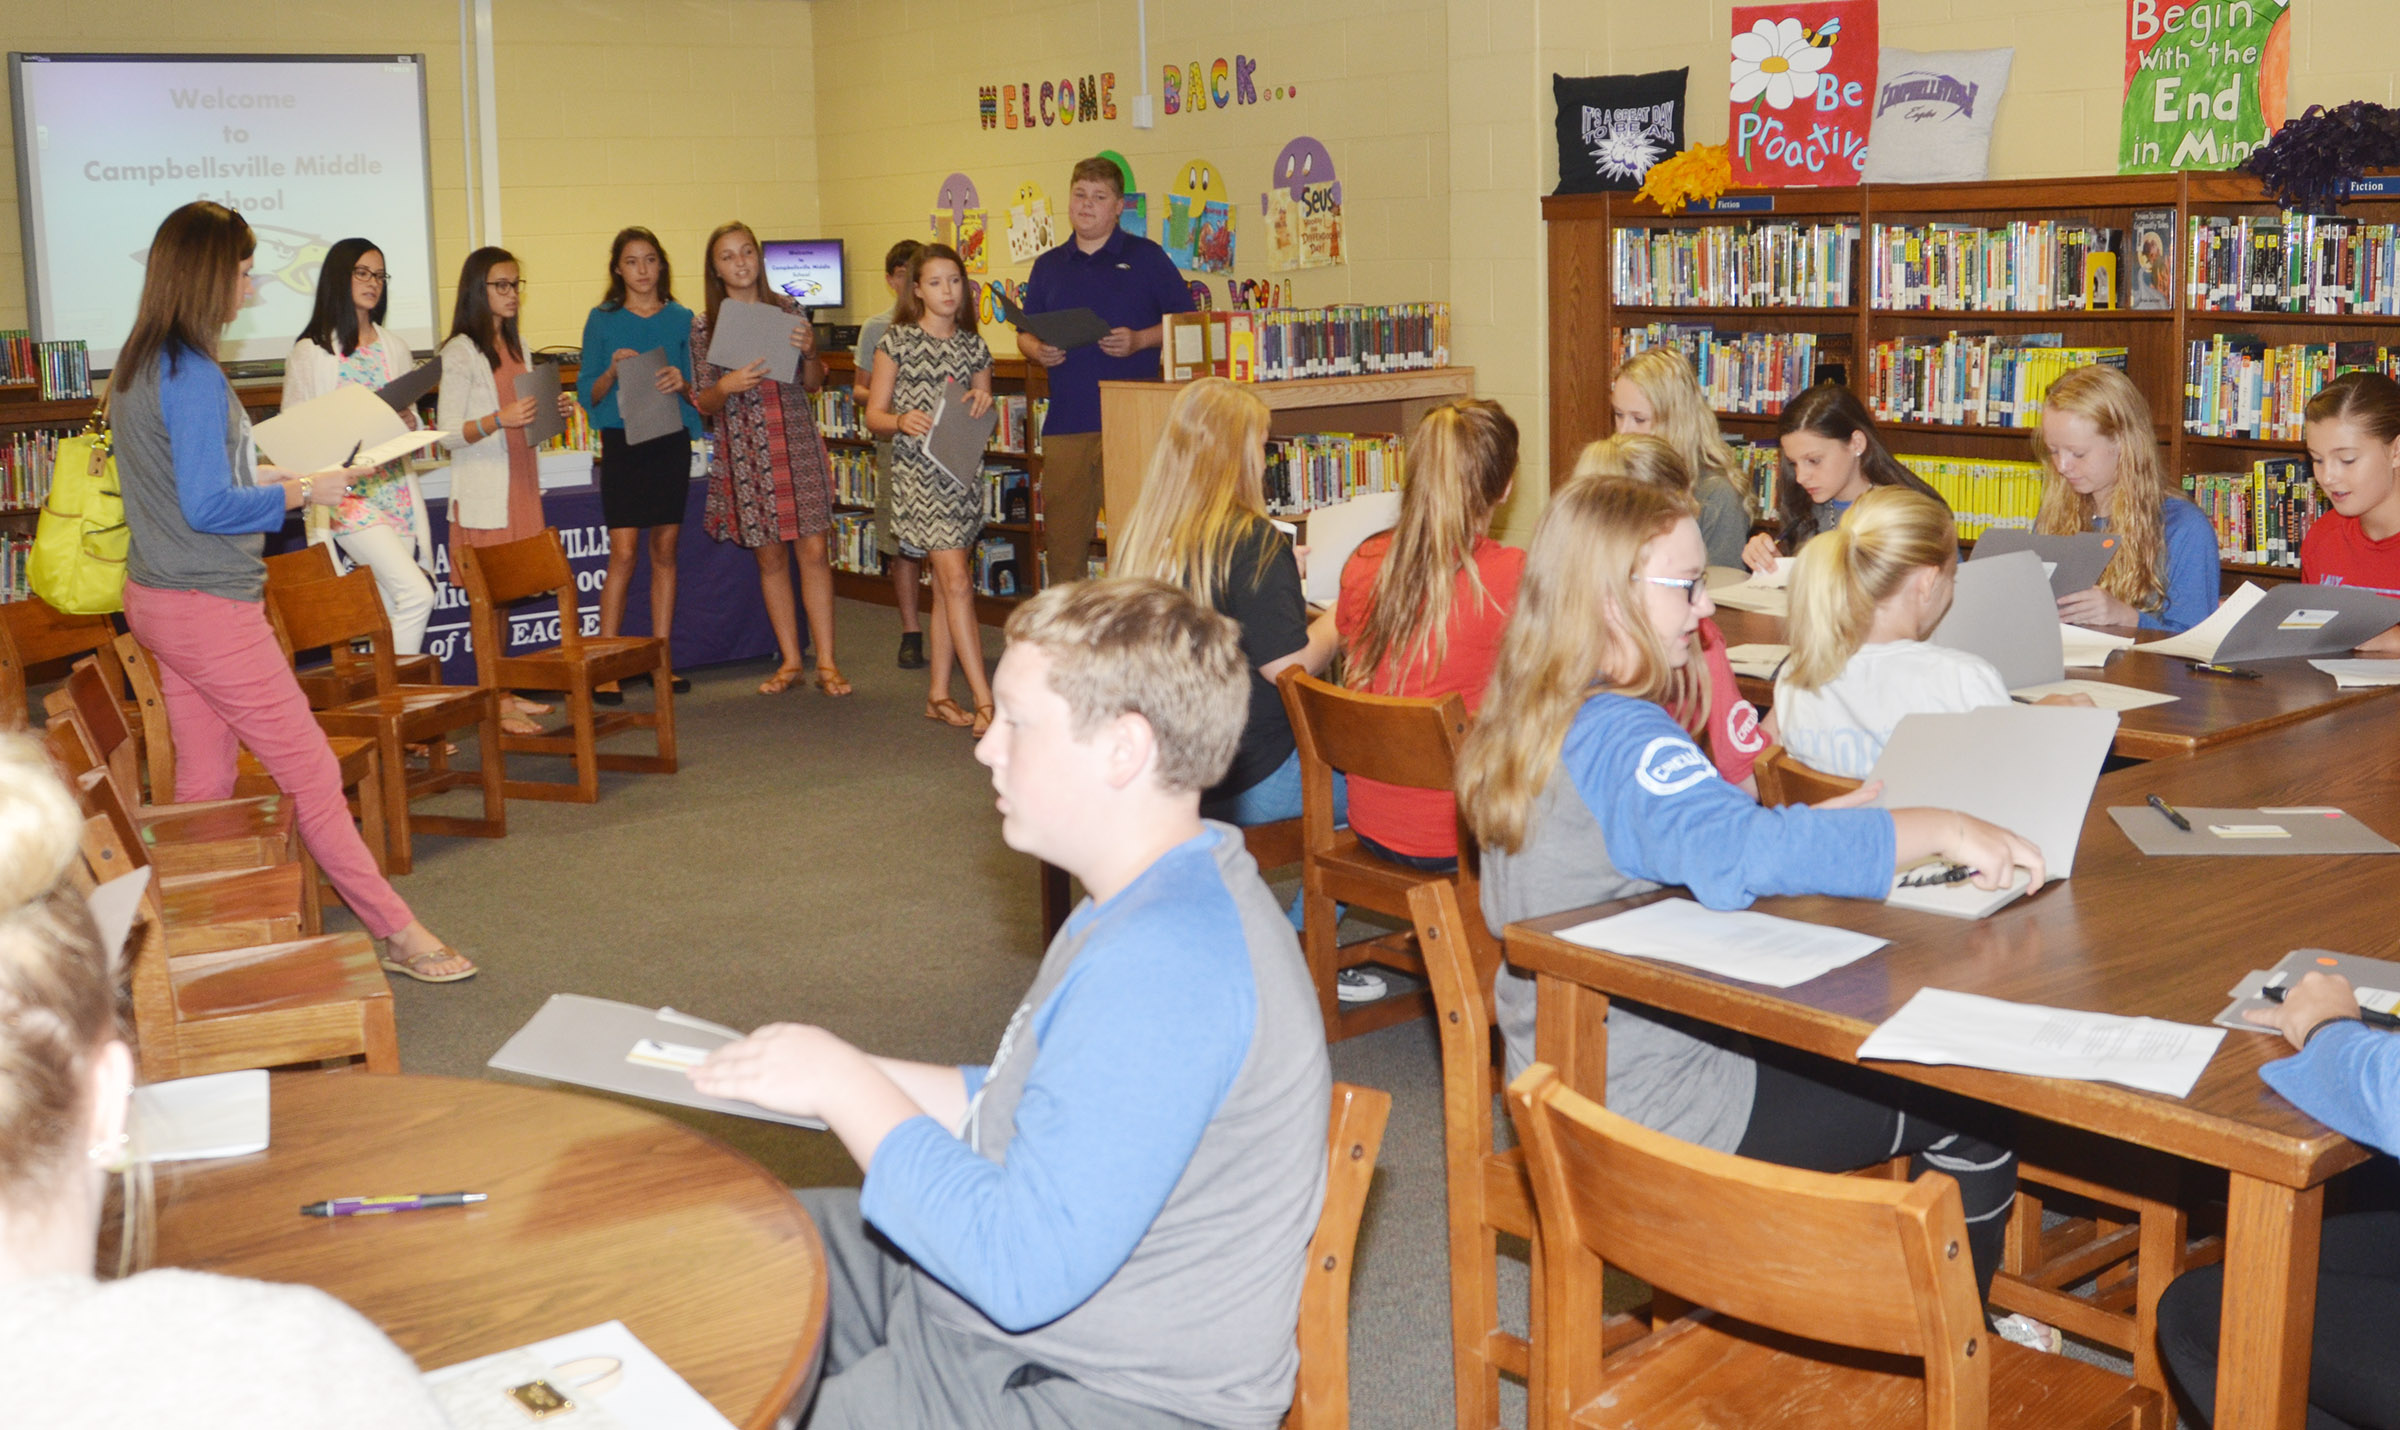 CMS Lighthouse Team members, at left, introduce themselves to their guests from Casey County Middle School.